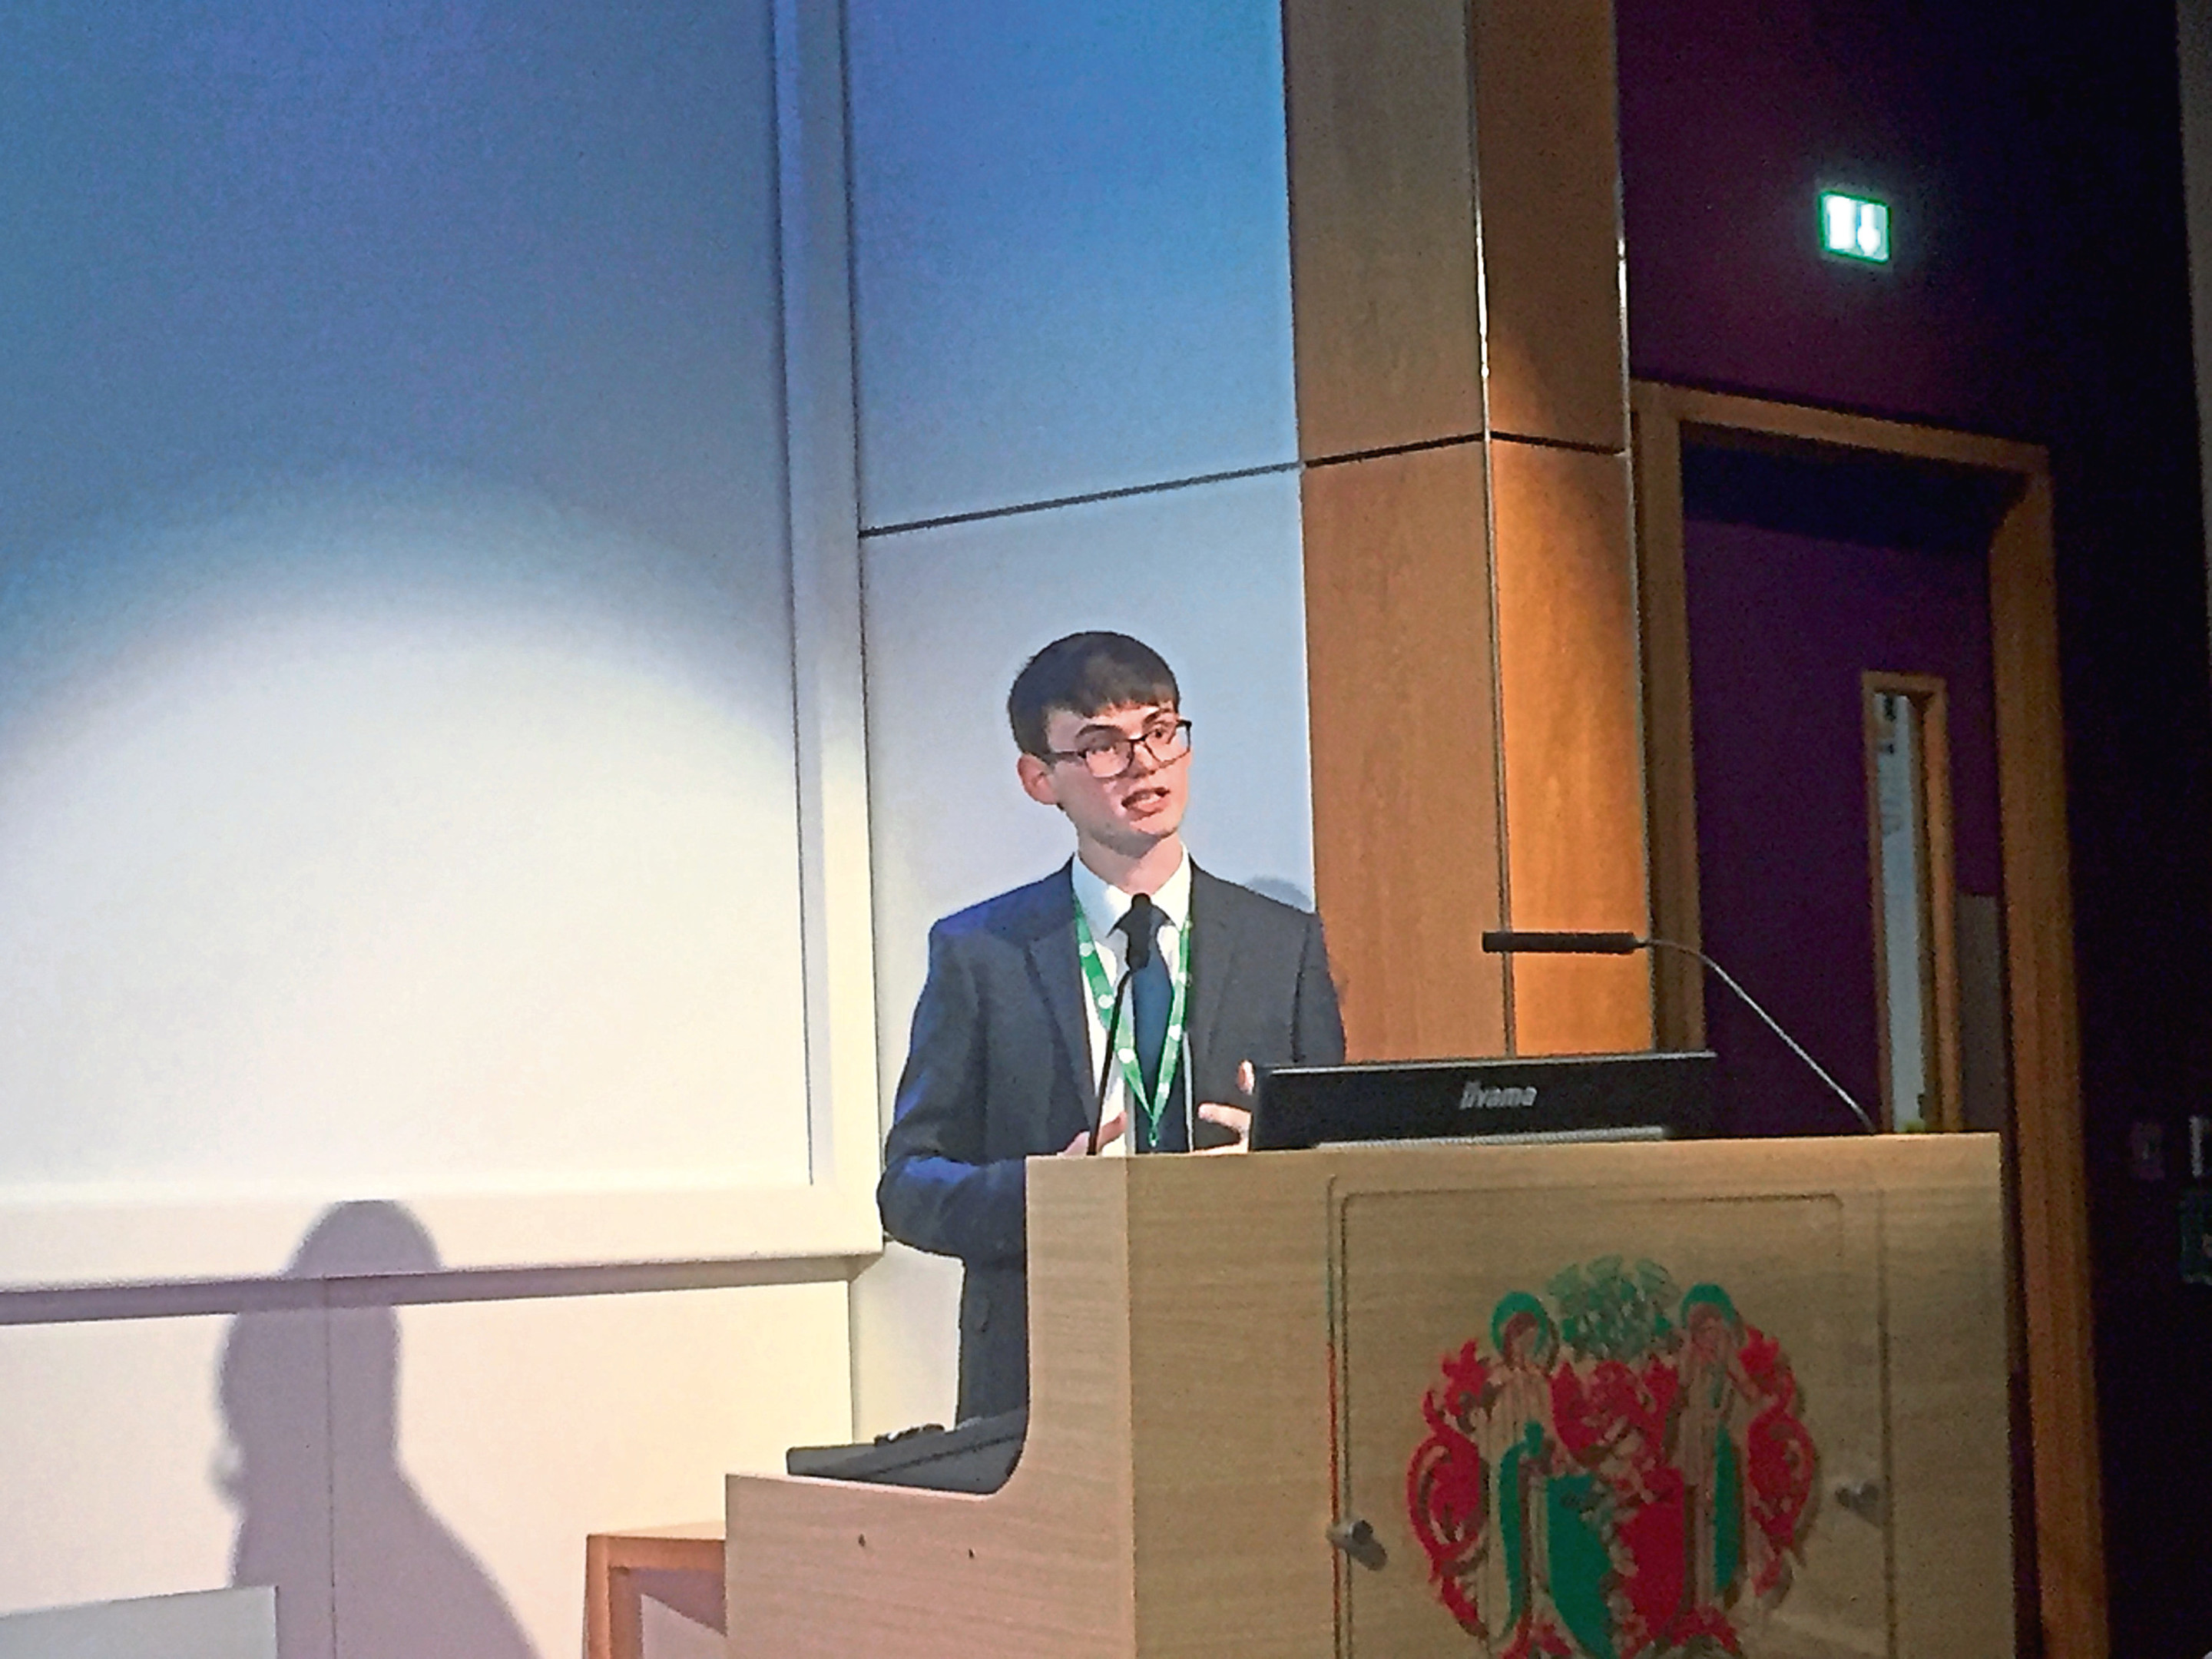 Duncan Ritchie has picked up the Sidney Linton Prize for medical education in cardiology from the Royal Society of Medicine